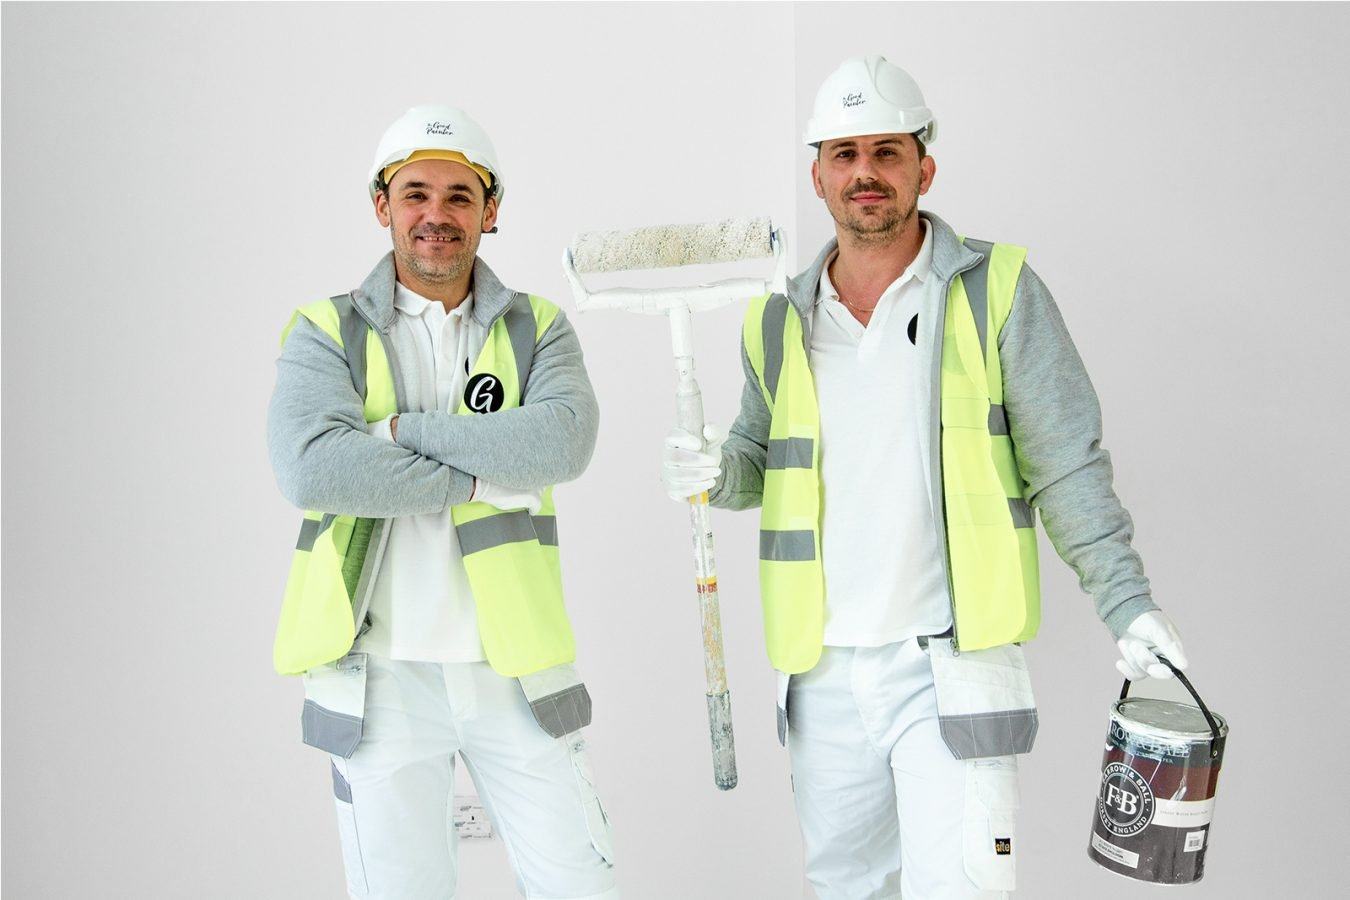 The Good Painter team with Farrow and Ball painting -painters and decorators based in London